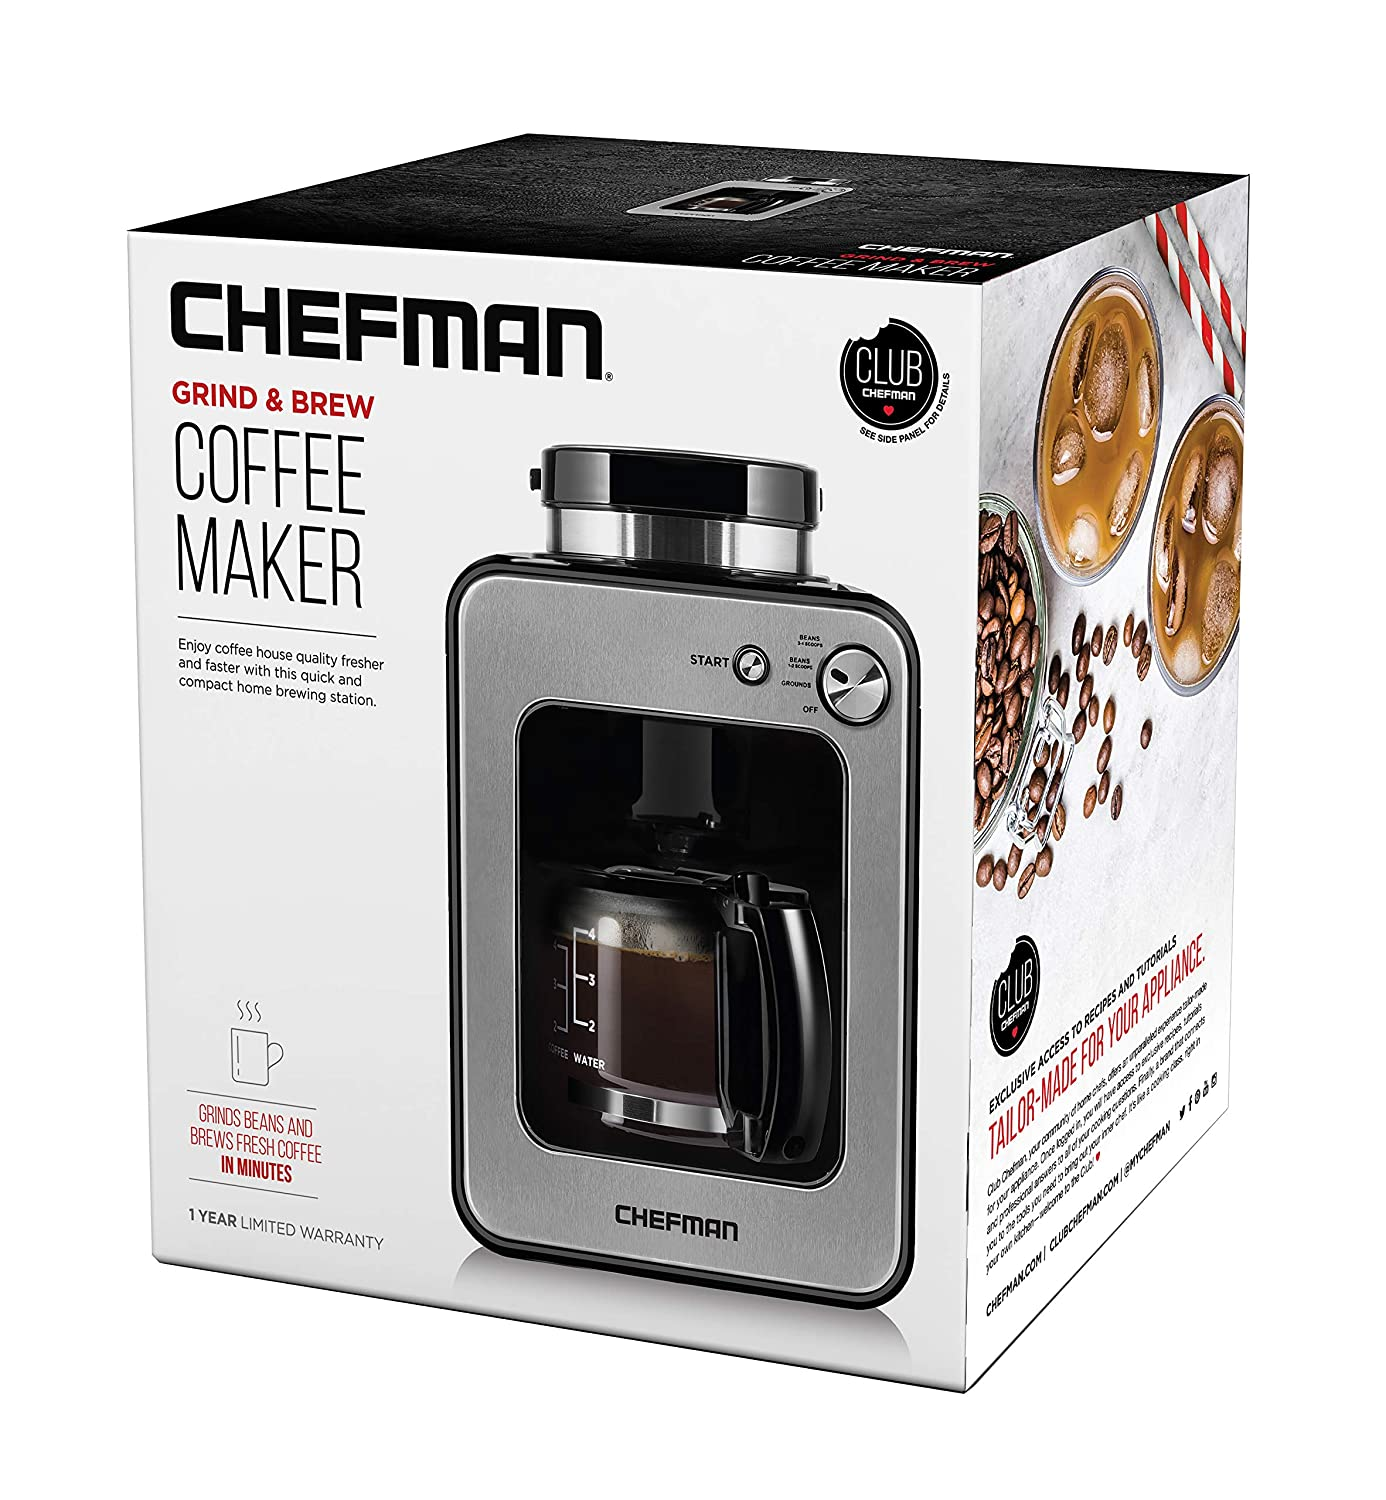 Chefman Grind and Brew 4 Cup Coffee Maker and Grinder, Compatible w/ Fresh Beans and Grounds, Adjustable Strength Settings, Washable Coffee Filter & Scoop Included, Compact, Black/Stainless Steel